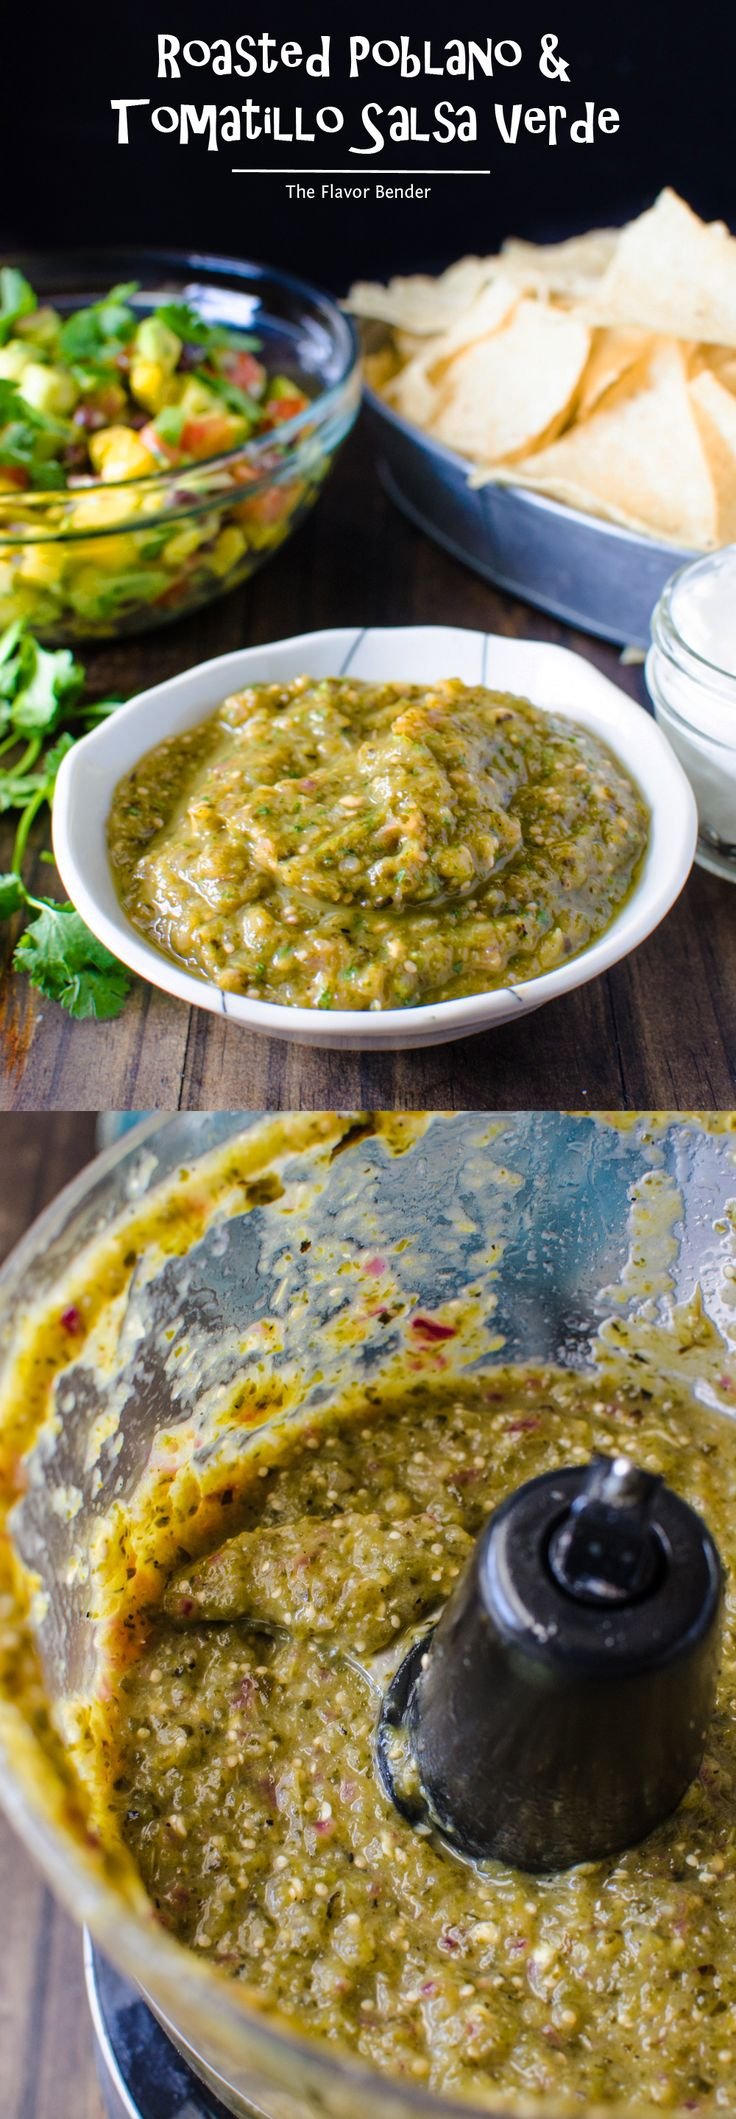 Roasted Poblano and Tomatillo Salsa Verde - So easy to make with big roasted flavors and perfect as a dip, on tacos and so much more! CLICK to get the recipe. REPIN to save for later. #TheFlavorBender